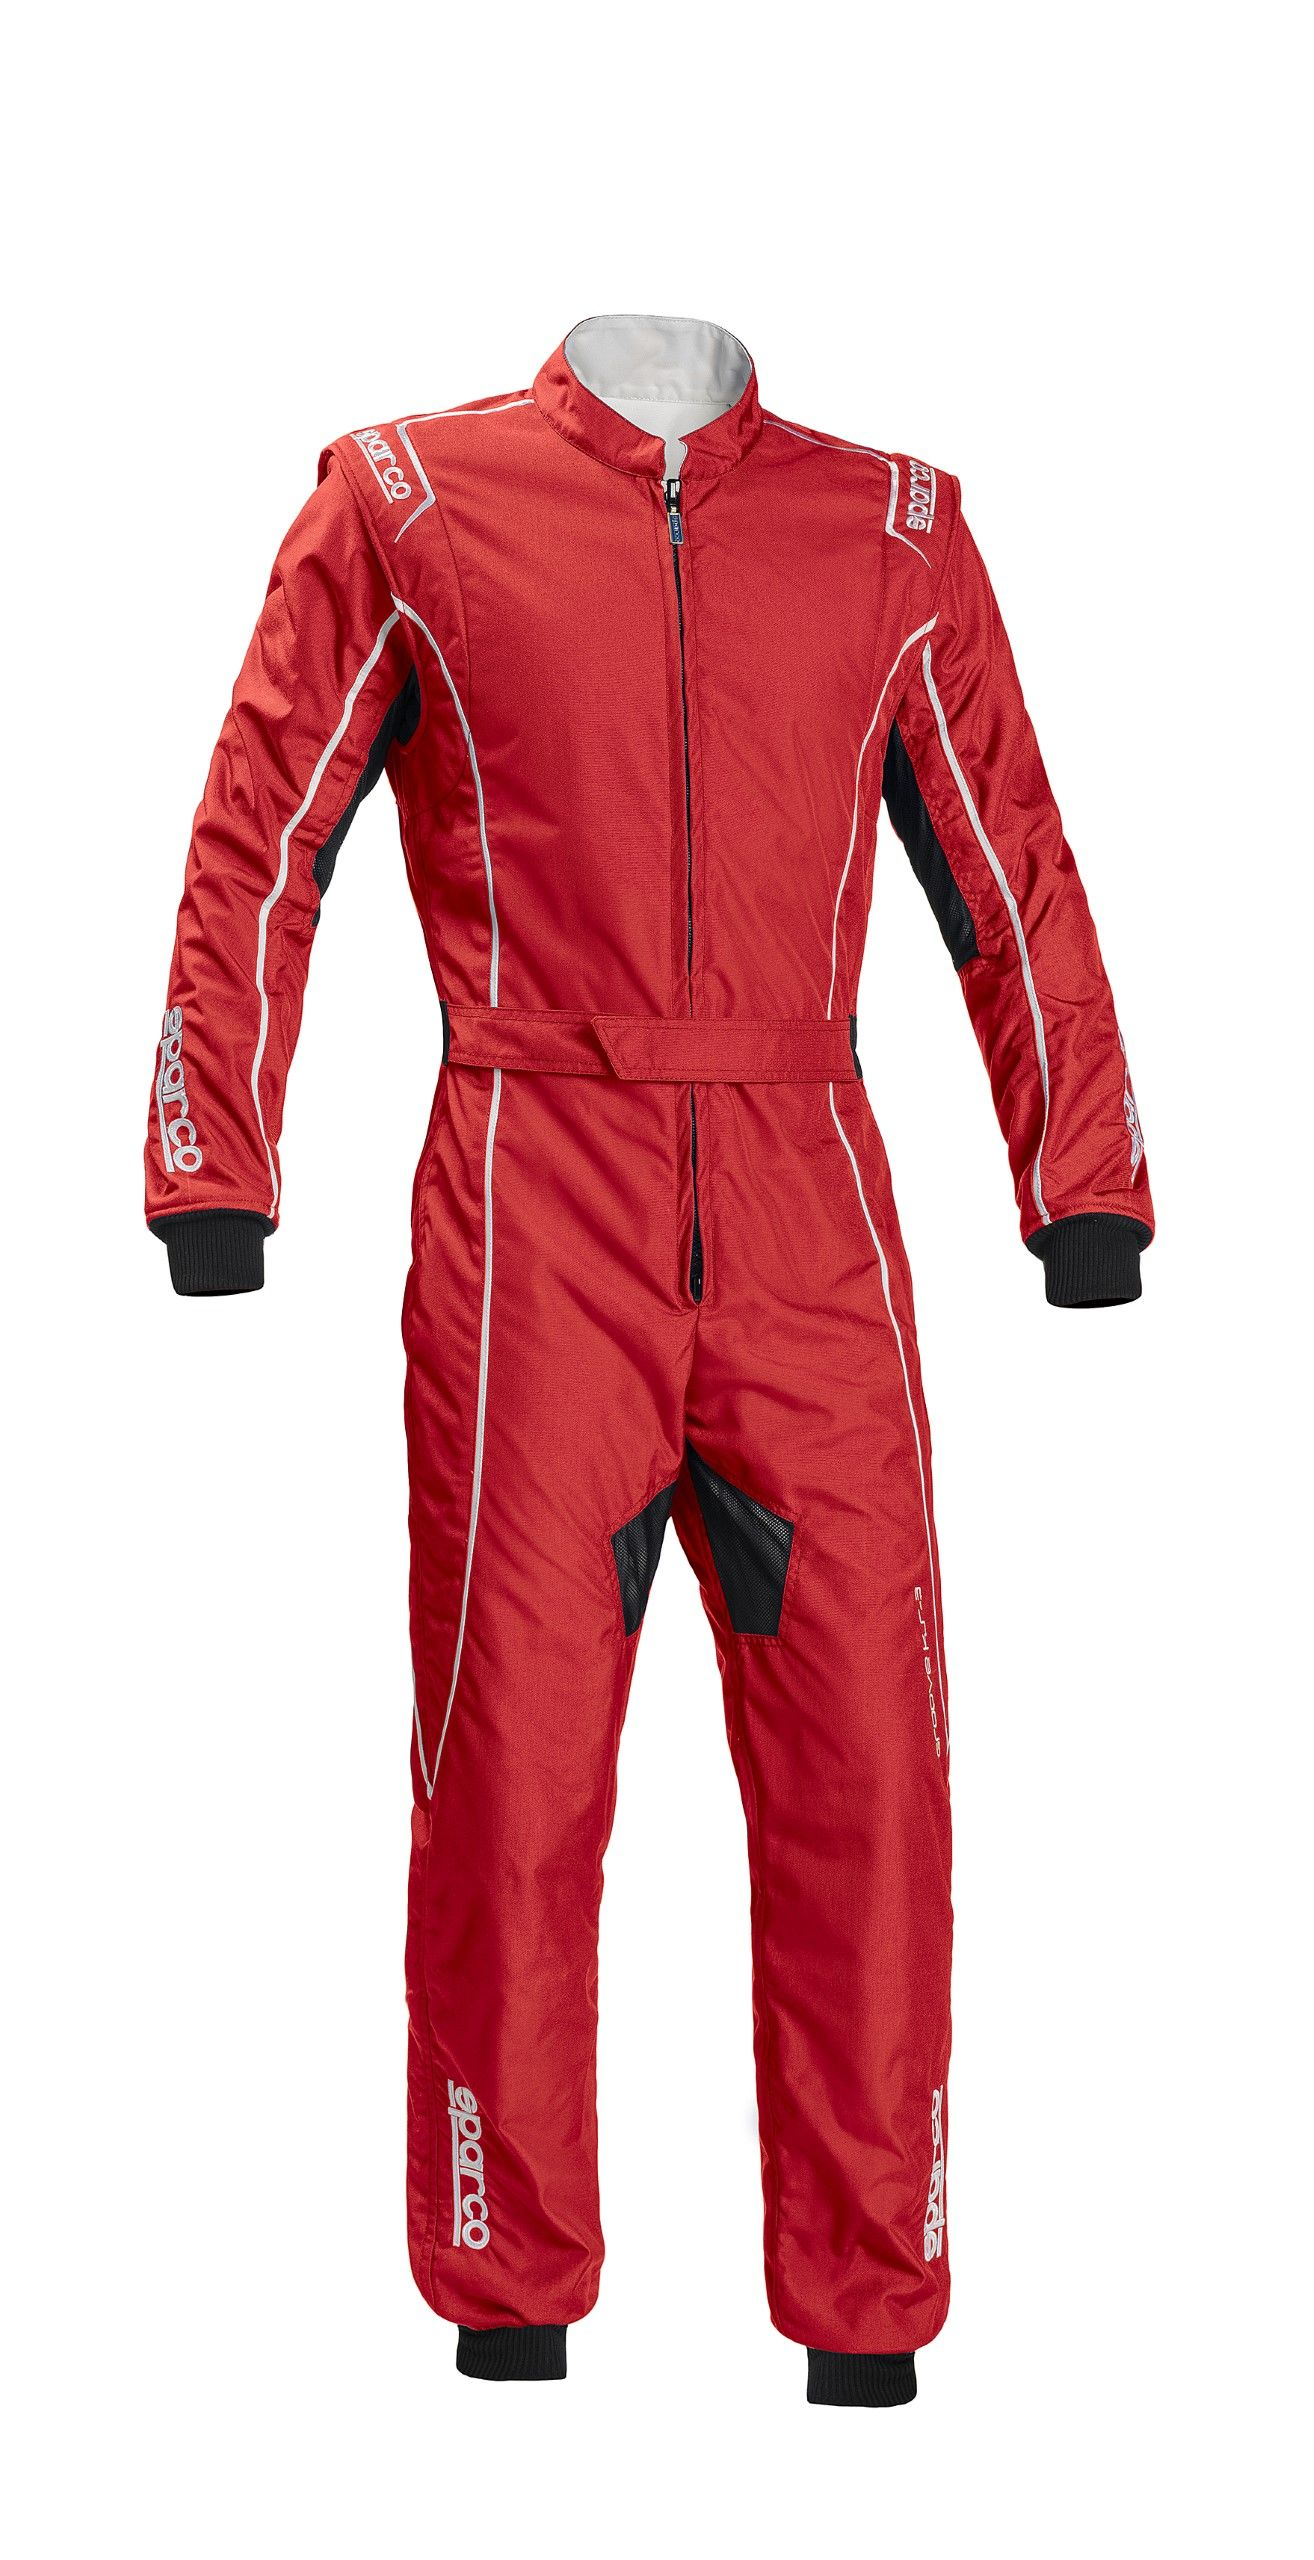 Sports Car Clothing Sparco Groove Ks 3 Kart Racing Suit Races Outfit Casual Activewear Racing Suit